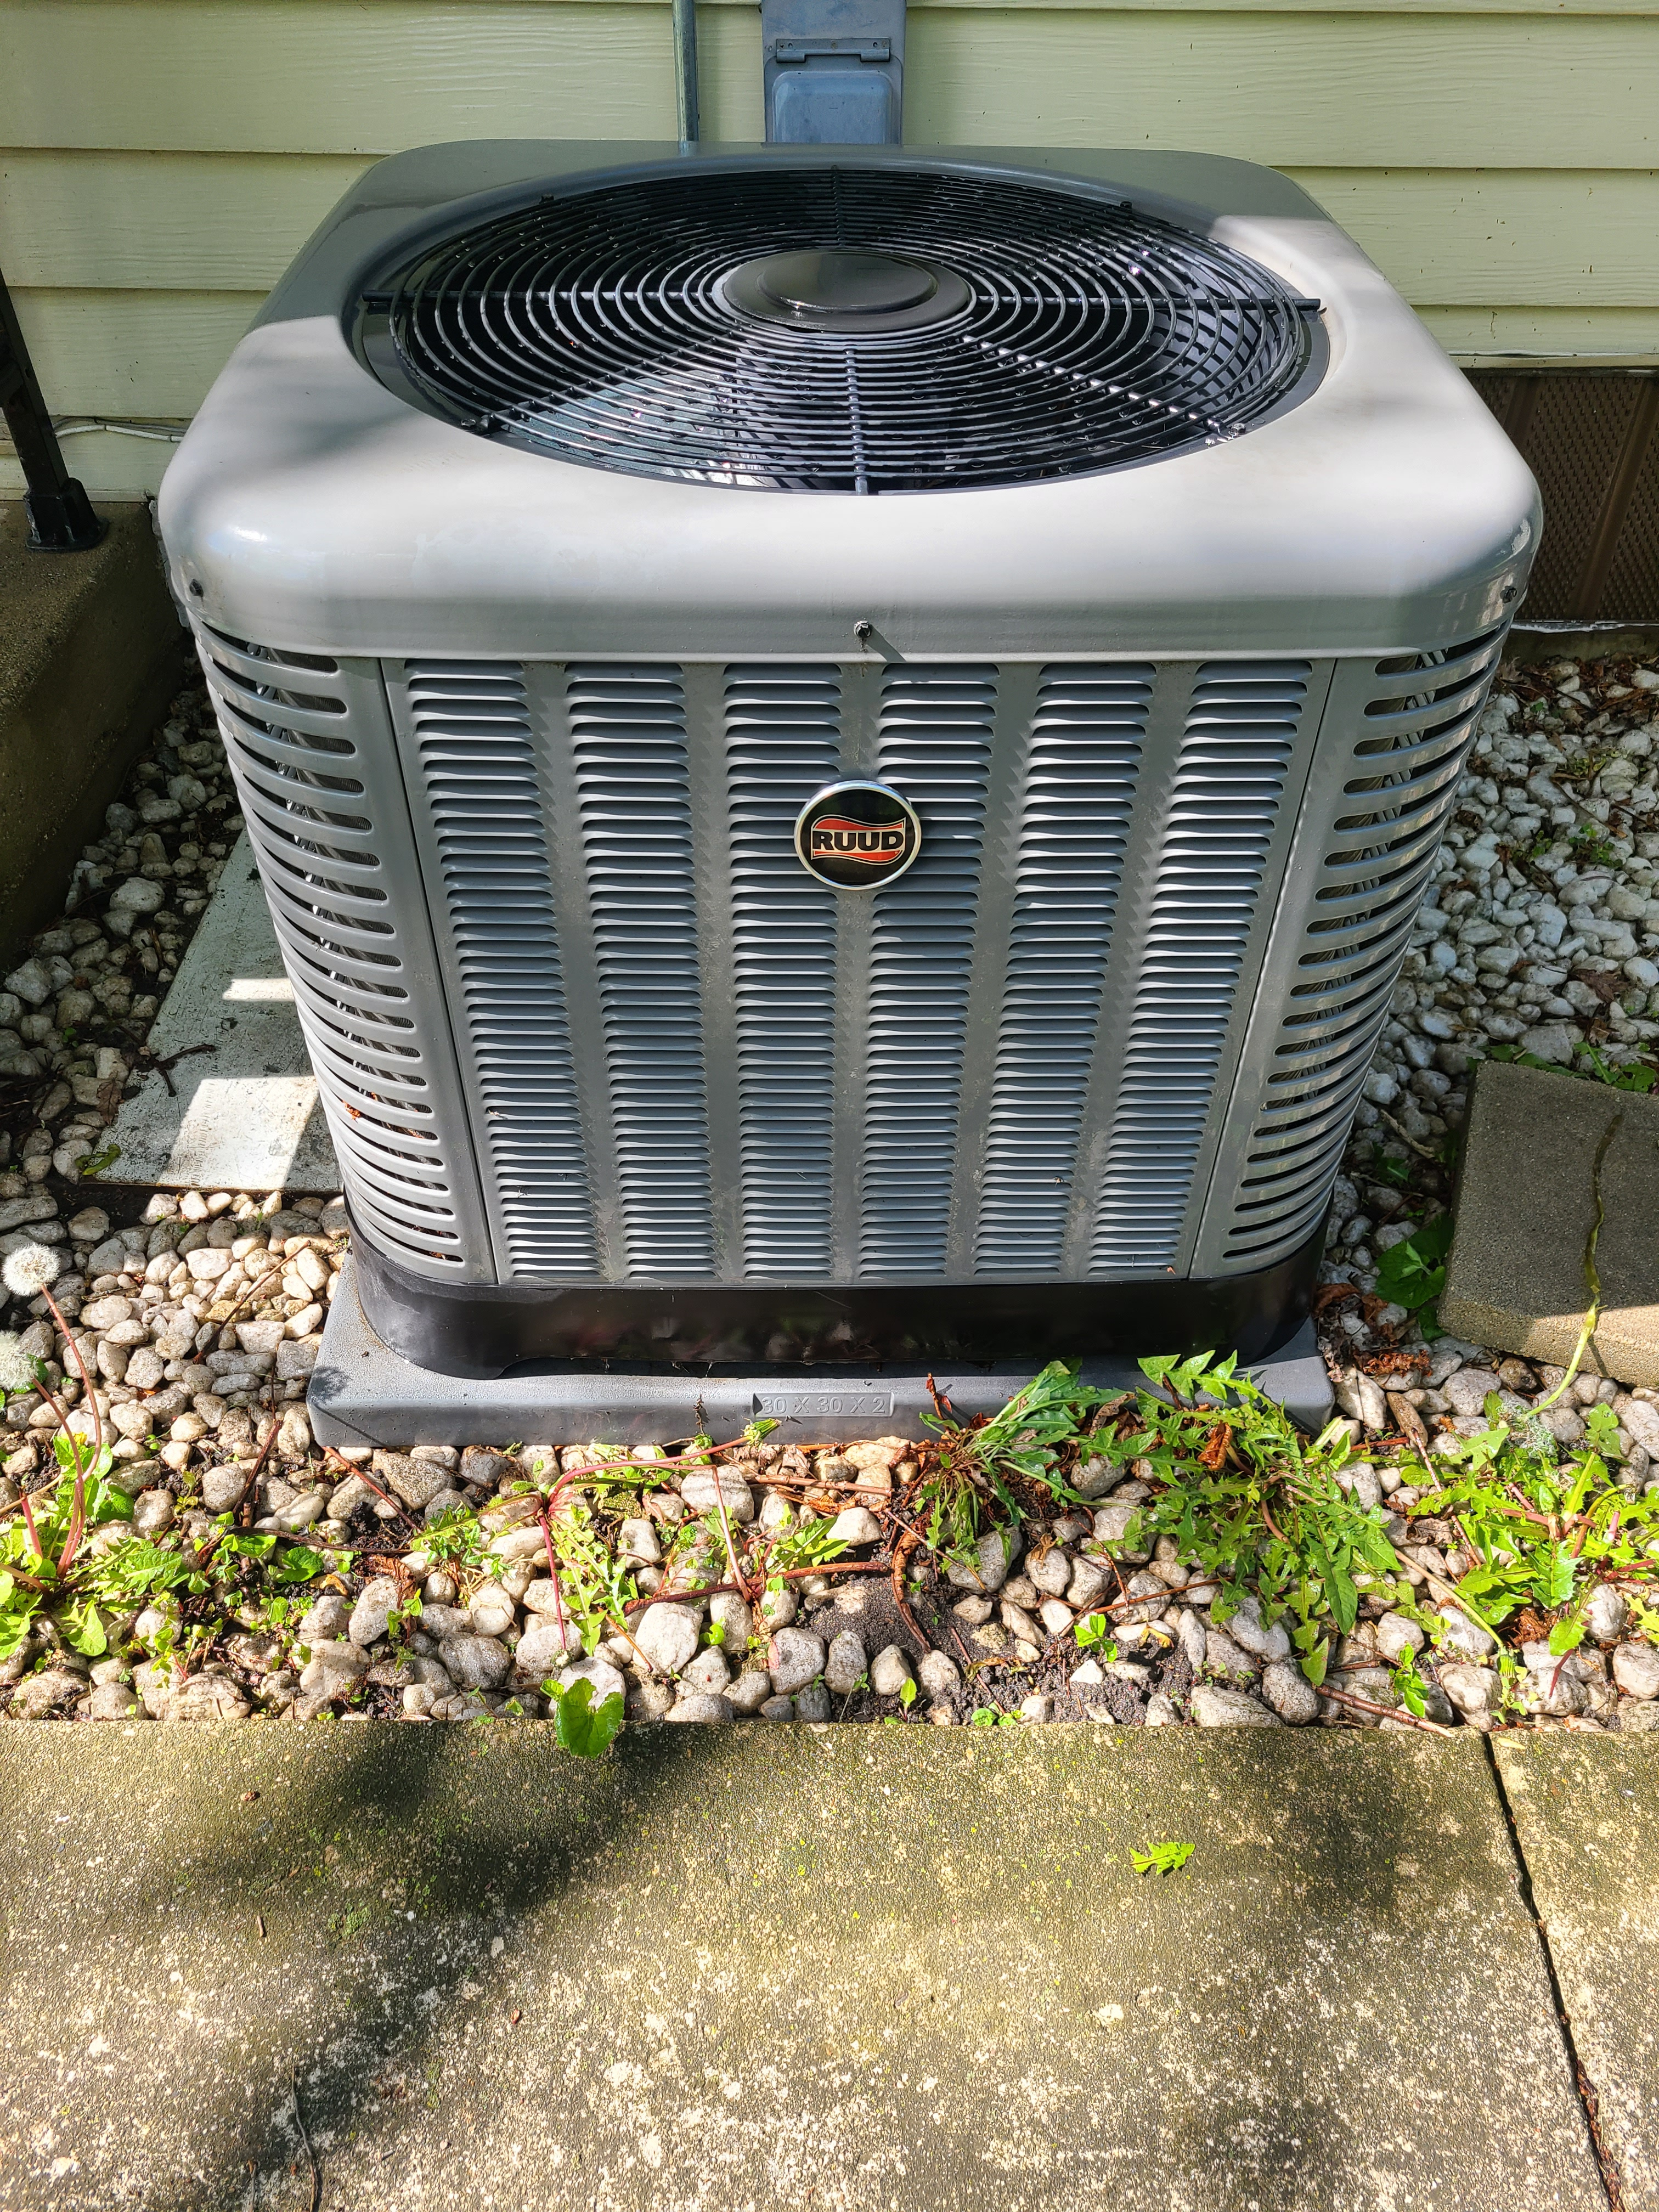 AC tuneup on a Ruud air conditioner for Comfort Club member.